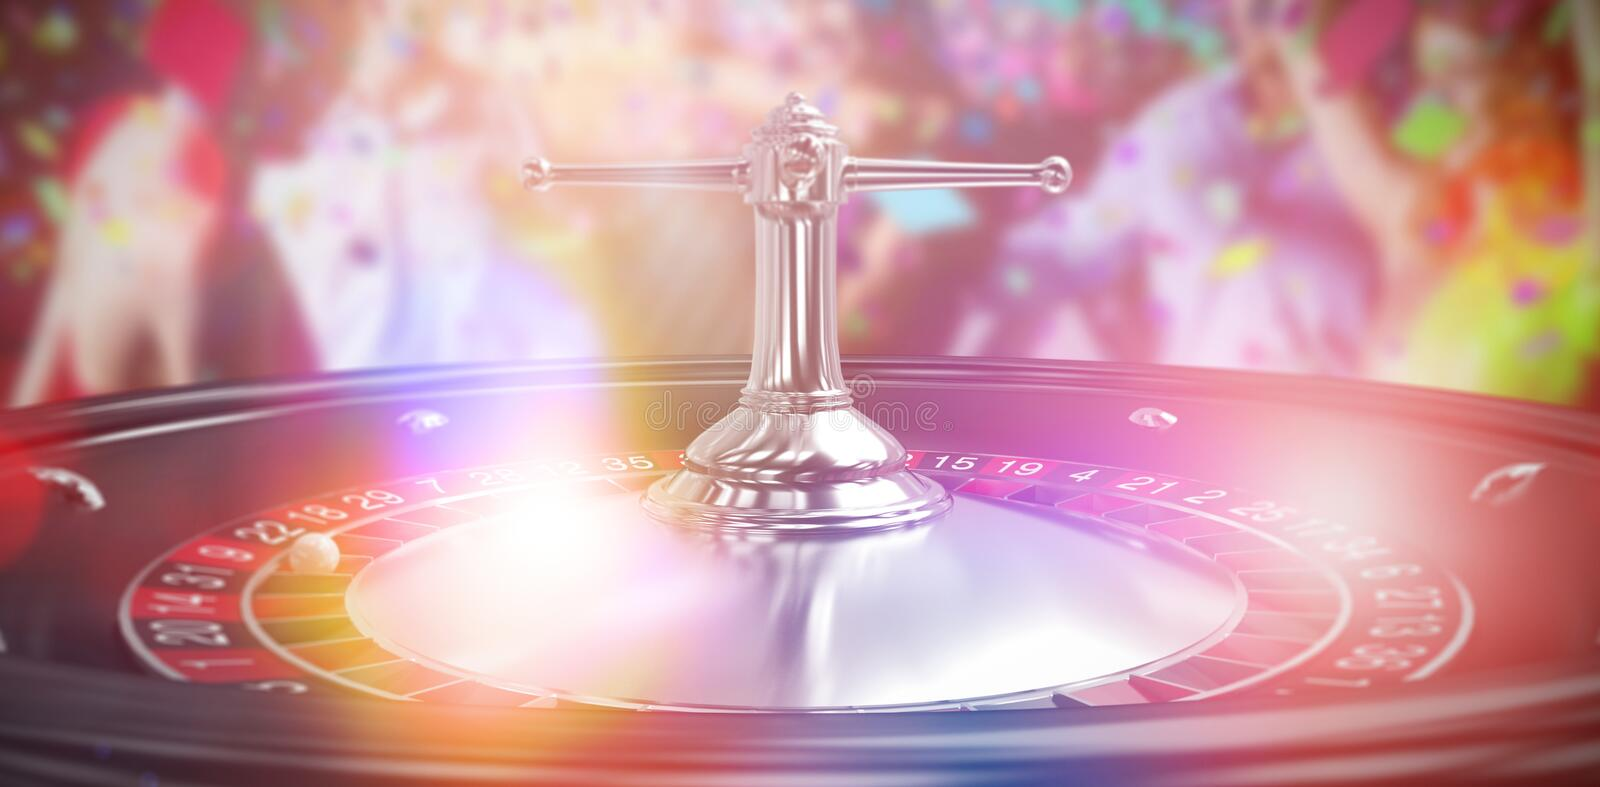 Composite 3d image of smiling friends dancing on dance floor. Smiling friends dancing on dance floor against close up image of 3d roulette wheel stock images